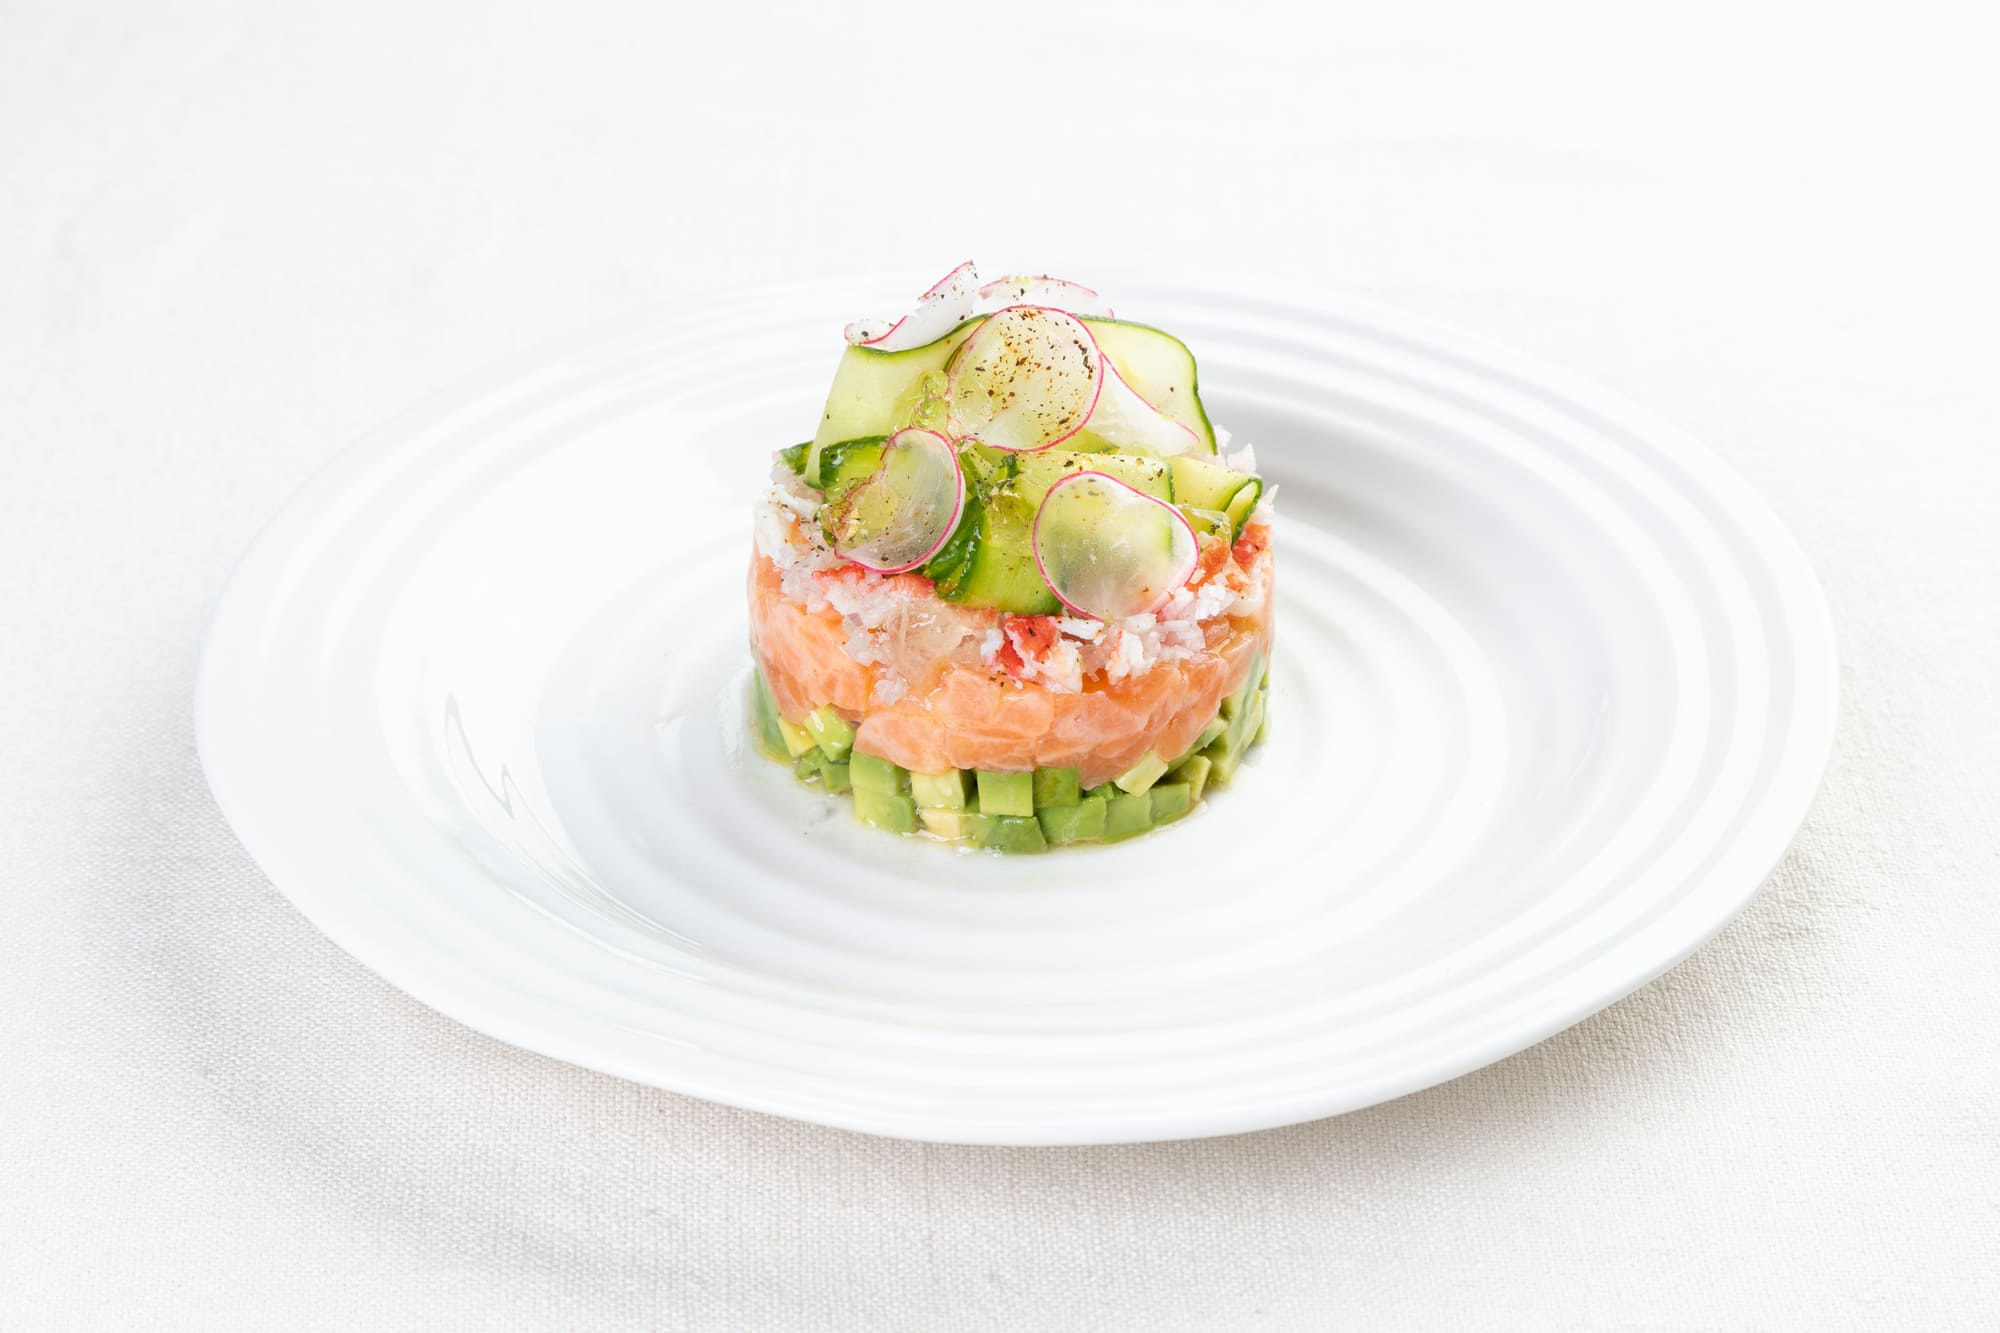 Salmon tartare with avocado, crab and cucumber slices